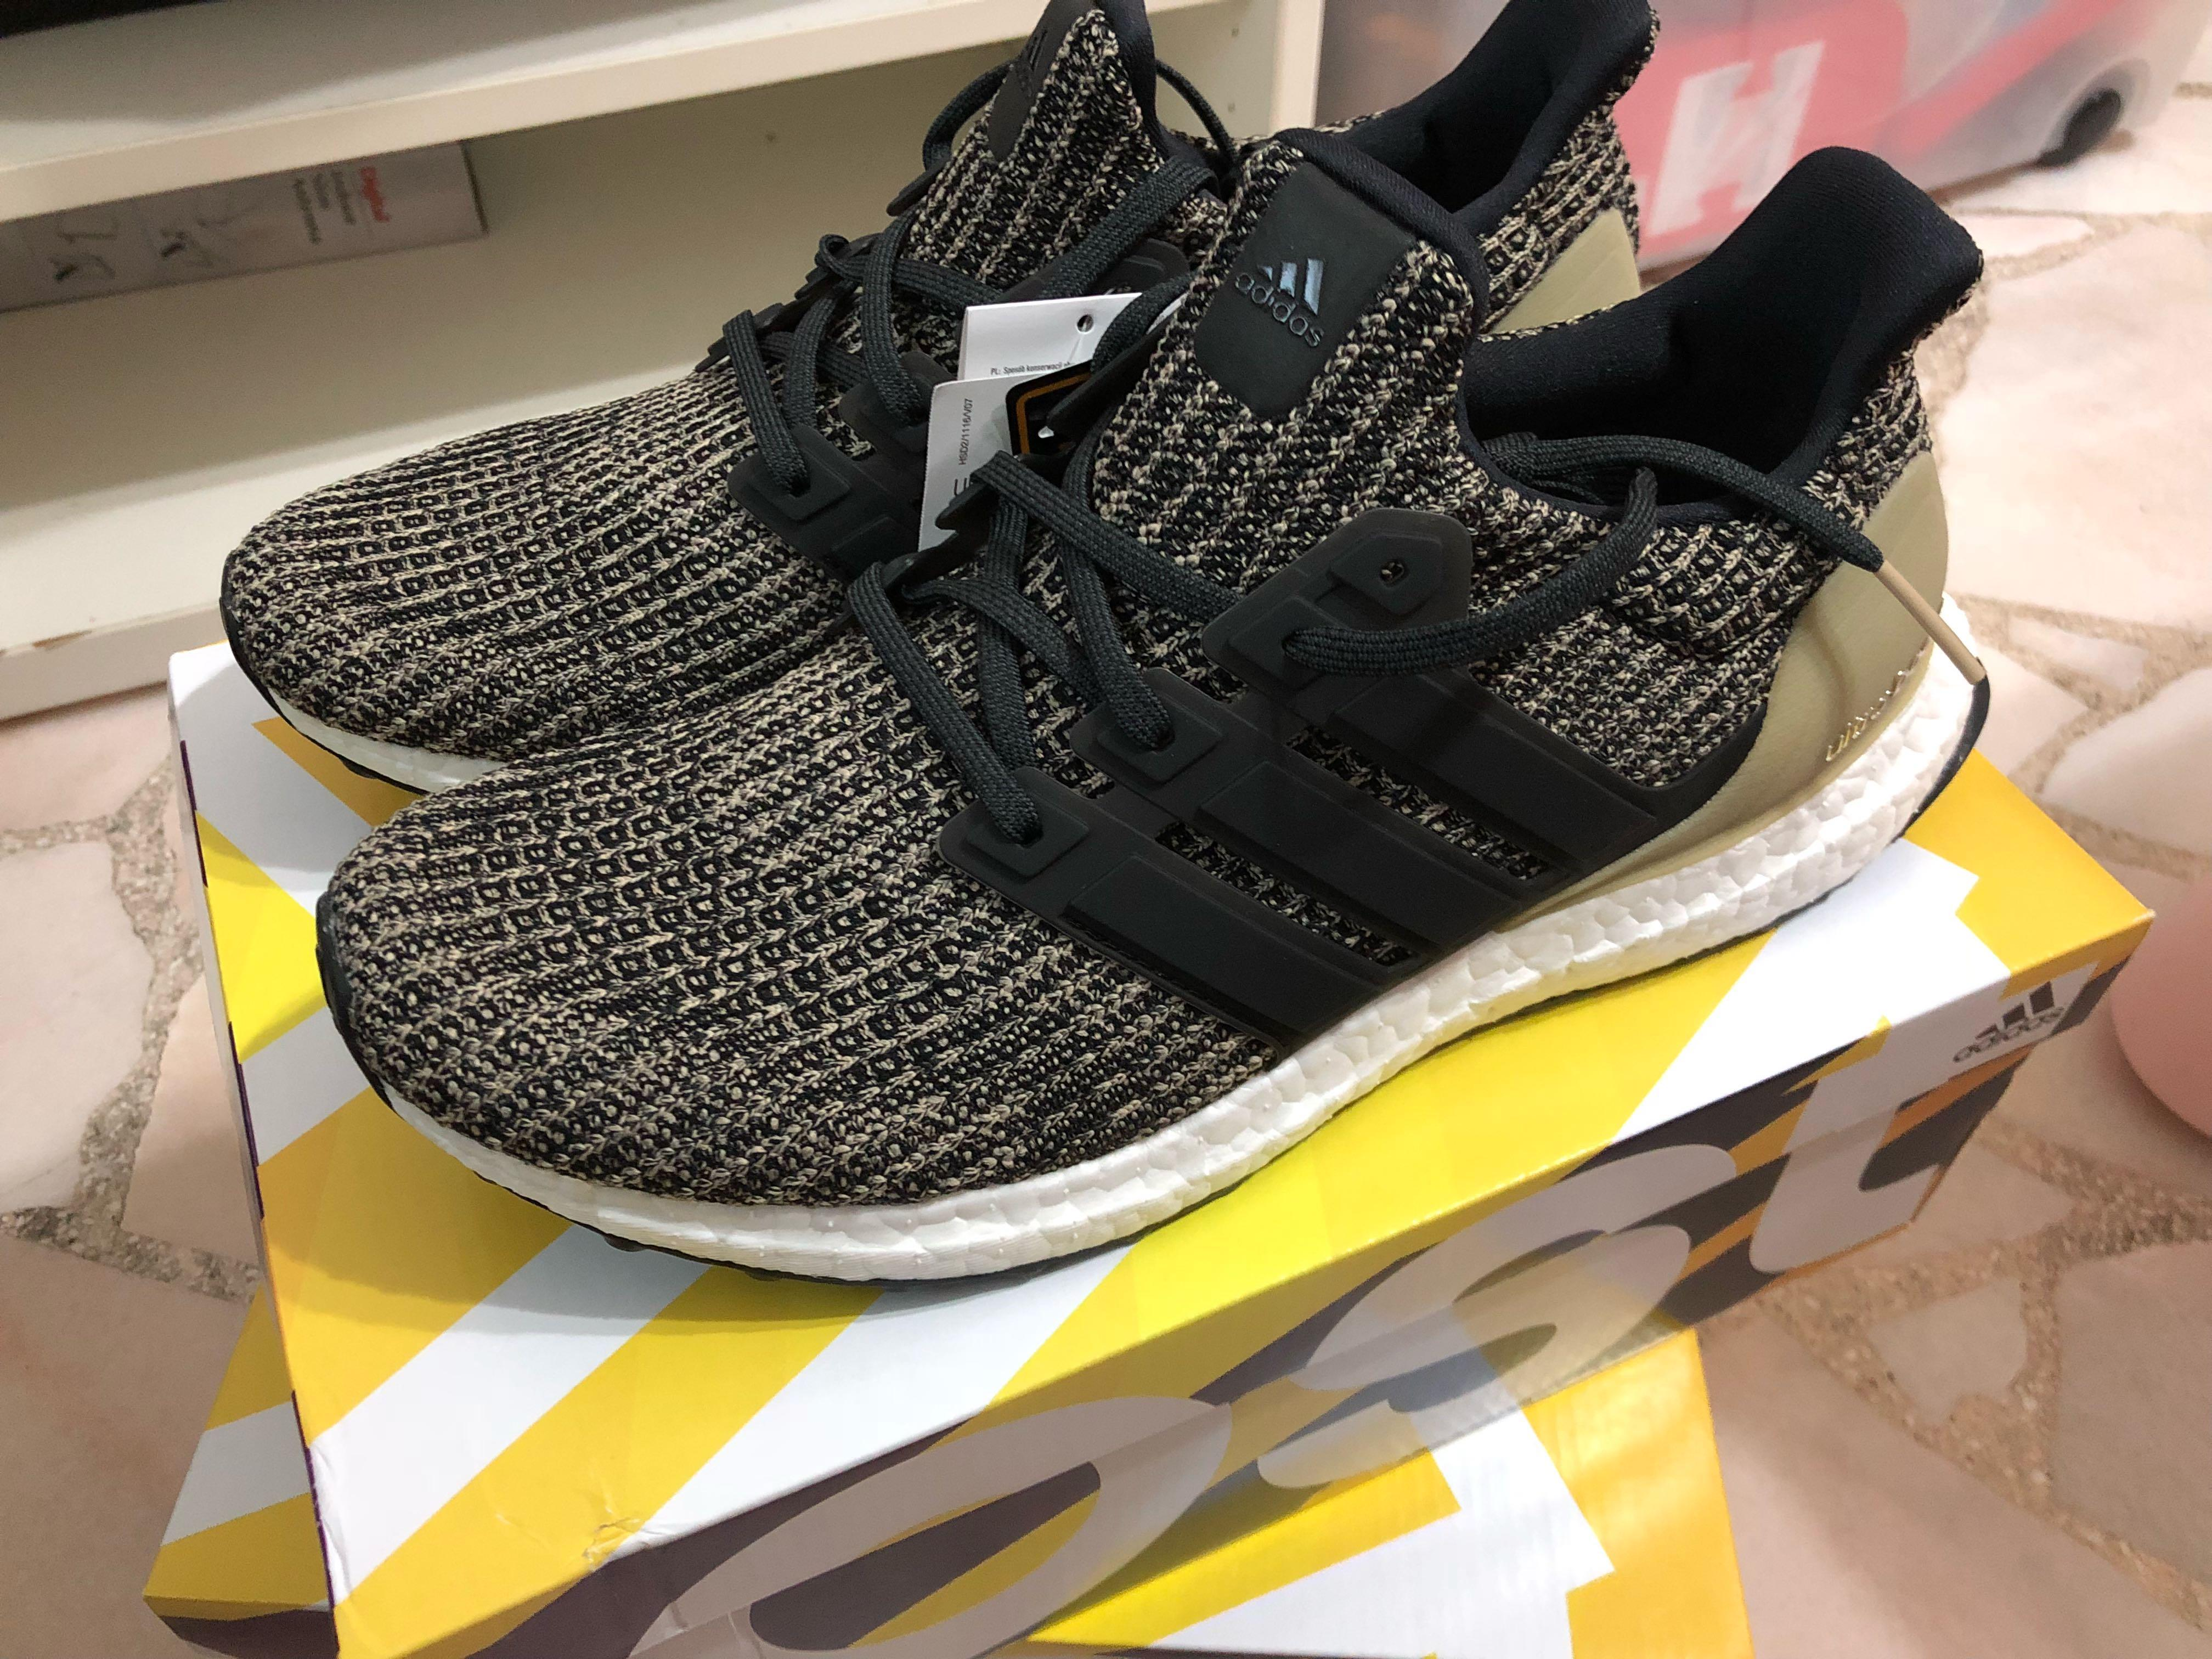 new products 104a4 820d1 Adidas Ultra Boost 4.0 Core Black/Raw Gold, Men's Fashion ...